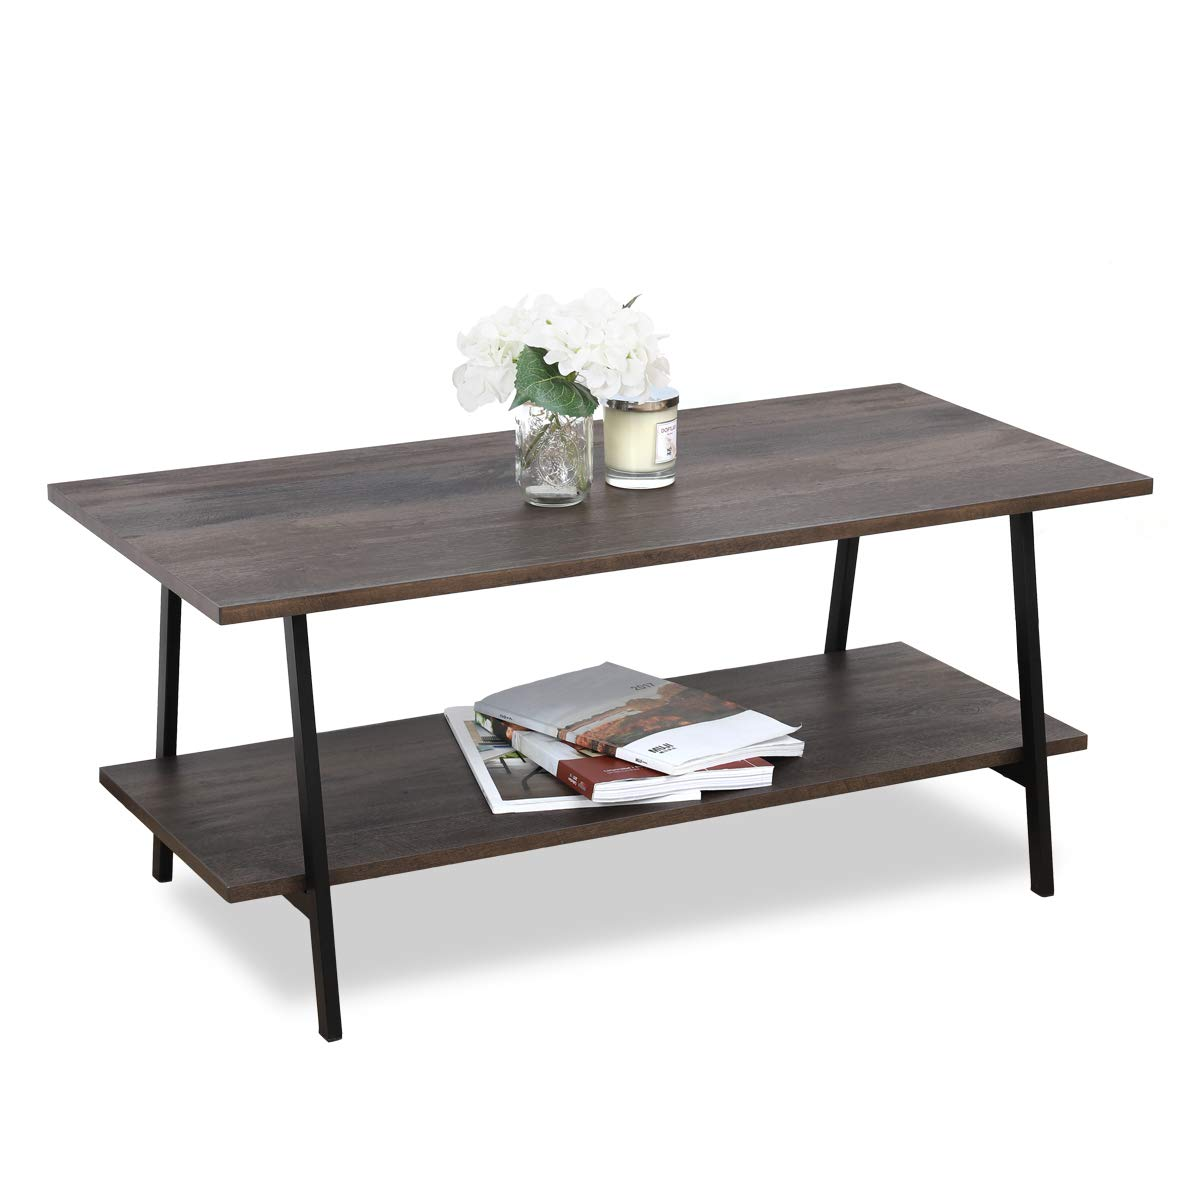 sekey home coffee table 2 tier cocktail table with storage shelf for living room wood look accent furniture with metal frame easy assembly